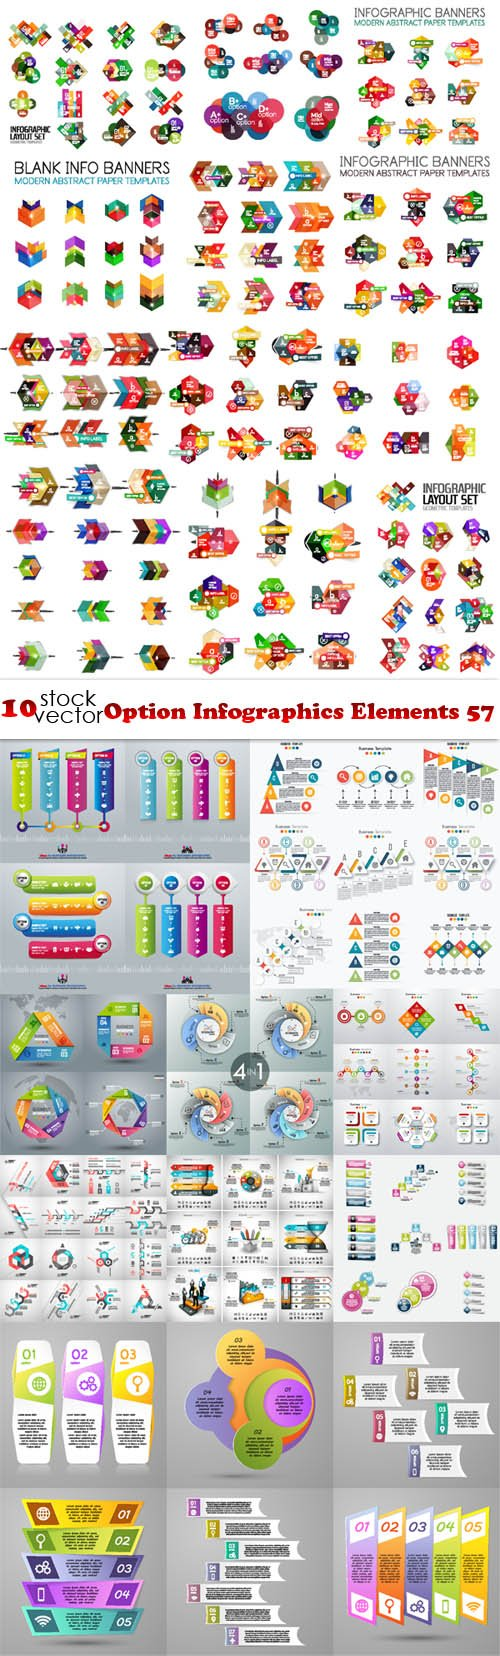 Vectors - Option Infographics Elements 57